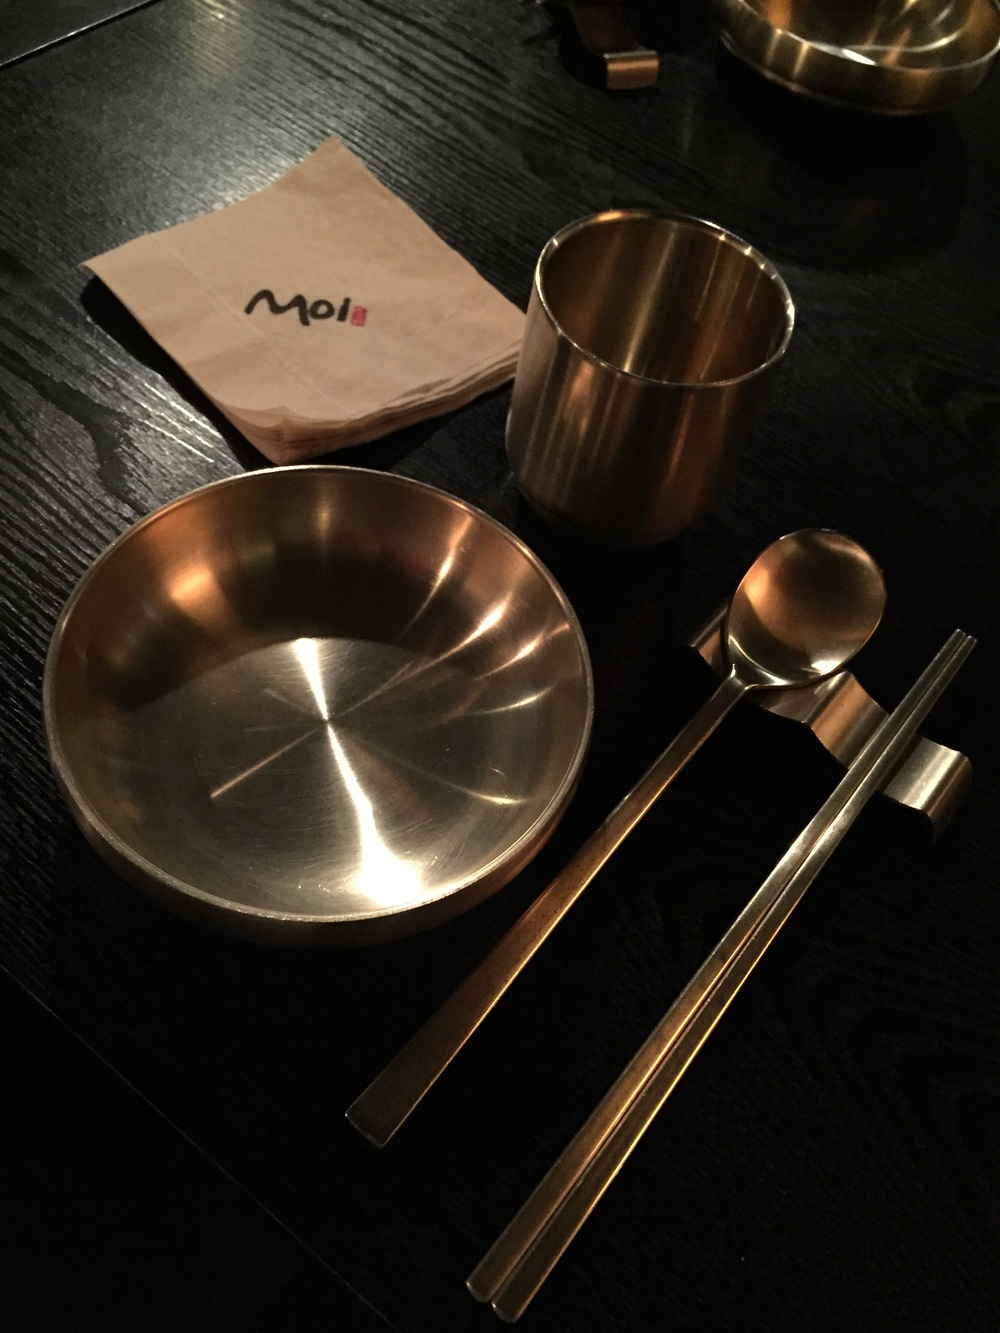 """Traditional Korean metal plates andutensils.  Apparently there are a few reasons on why Korea uses metal chopsticks: 1) In early times, the King used to use only pure silver chopsticks because if his food was poisoned, the silver would tarnishand he would be able to detect it incase someone was trying to poison him. 2)Originally, higher grade metals like silver and brass were used for the royal families, so metal chopstickssymbolises high class or are considered a valuable. 3) When there used to be many fires in the palaces, metal utensils would survive as opposed to things made out of wood.  If you enjoy random facts like this or likelearning about history, geography, culture, politics, etc of Korea, but want to learn about it in a funny comic book style format,  go to  Kyobo Bookstore  and buy  """"Korea Unmasked"""" by Lee Won Bok.  He is a famous Korean professor and cartoonist that has written many books, but this one in particular is translated into English. If you live in Korea, teach third culture kids, or have any Korean background/affiliation, Ican't recommend this informative and comicalbook enough! I am not a huge reader, but this is a must read and I learned so many fun facts about the differences between Korean, Japanese and Chinese cultures - European too actually,and why/how things have evolved the way they have.It helpedto explain so many questions I had about Korean culture and has a lot of random facts written in a hilarious page turning way! It even explains fun food relatedthings like why all the chopsticks are different styles/lengths in different Asian countries, why Korean food is strong and spicy andhow eventhatinfluences different personalities and temperments!  You can order off of the Korean Kyobo Bookstore website here:http://www.kyobobook.co.kr/search/SearchCommonMain.jsp  If you don't live in Korea, you can buy it for a higher price on Amazon here:http://www.amazon.com/Unmasked-Country-Society-Edition-Graphic/dp/8934917717"""